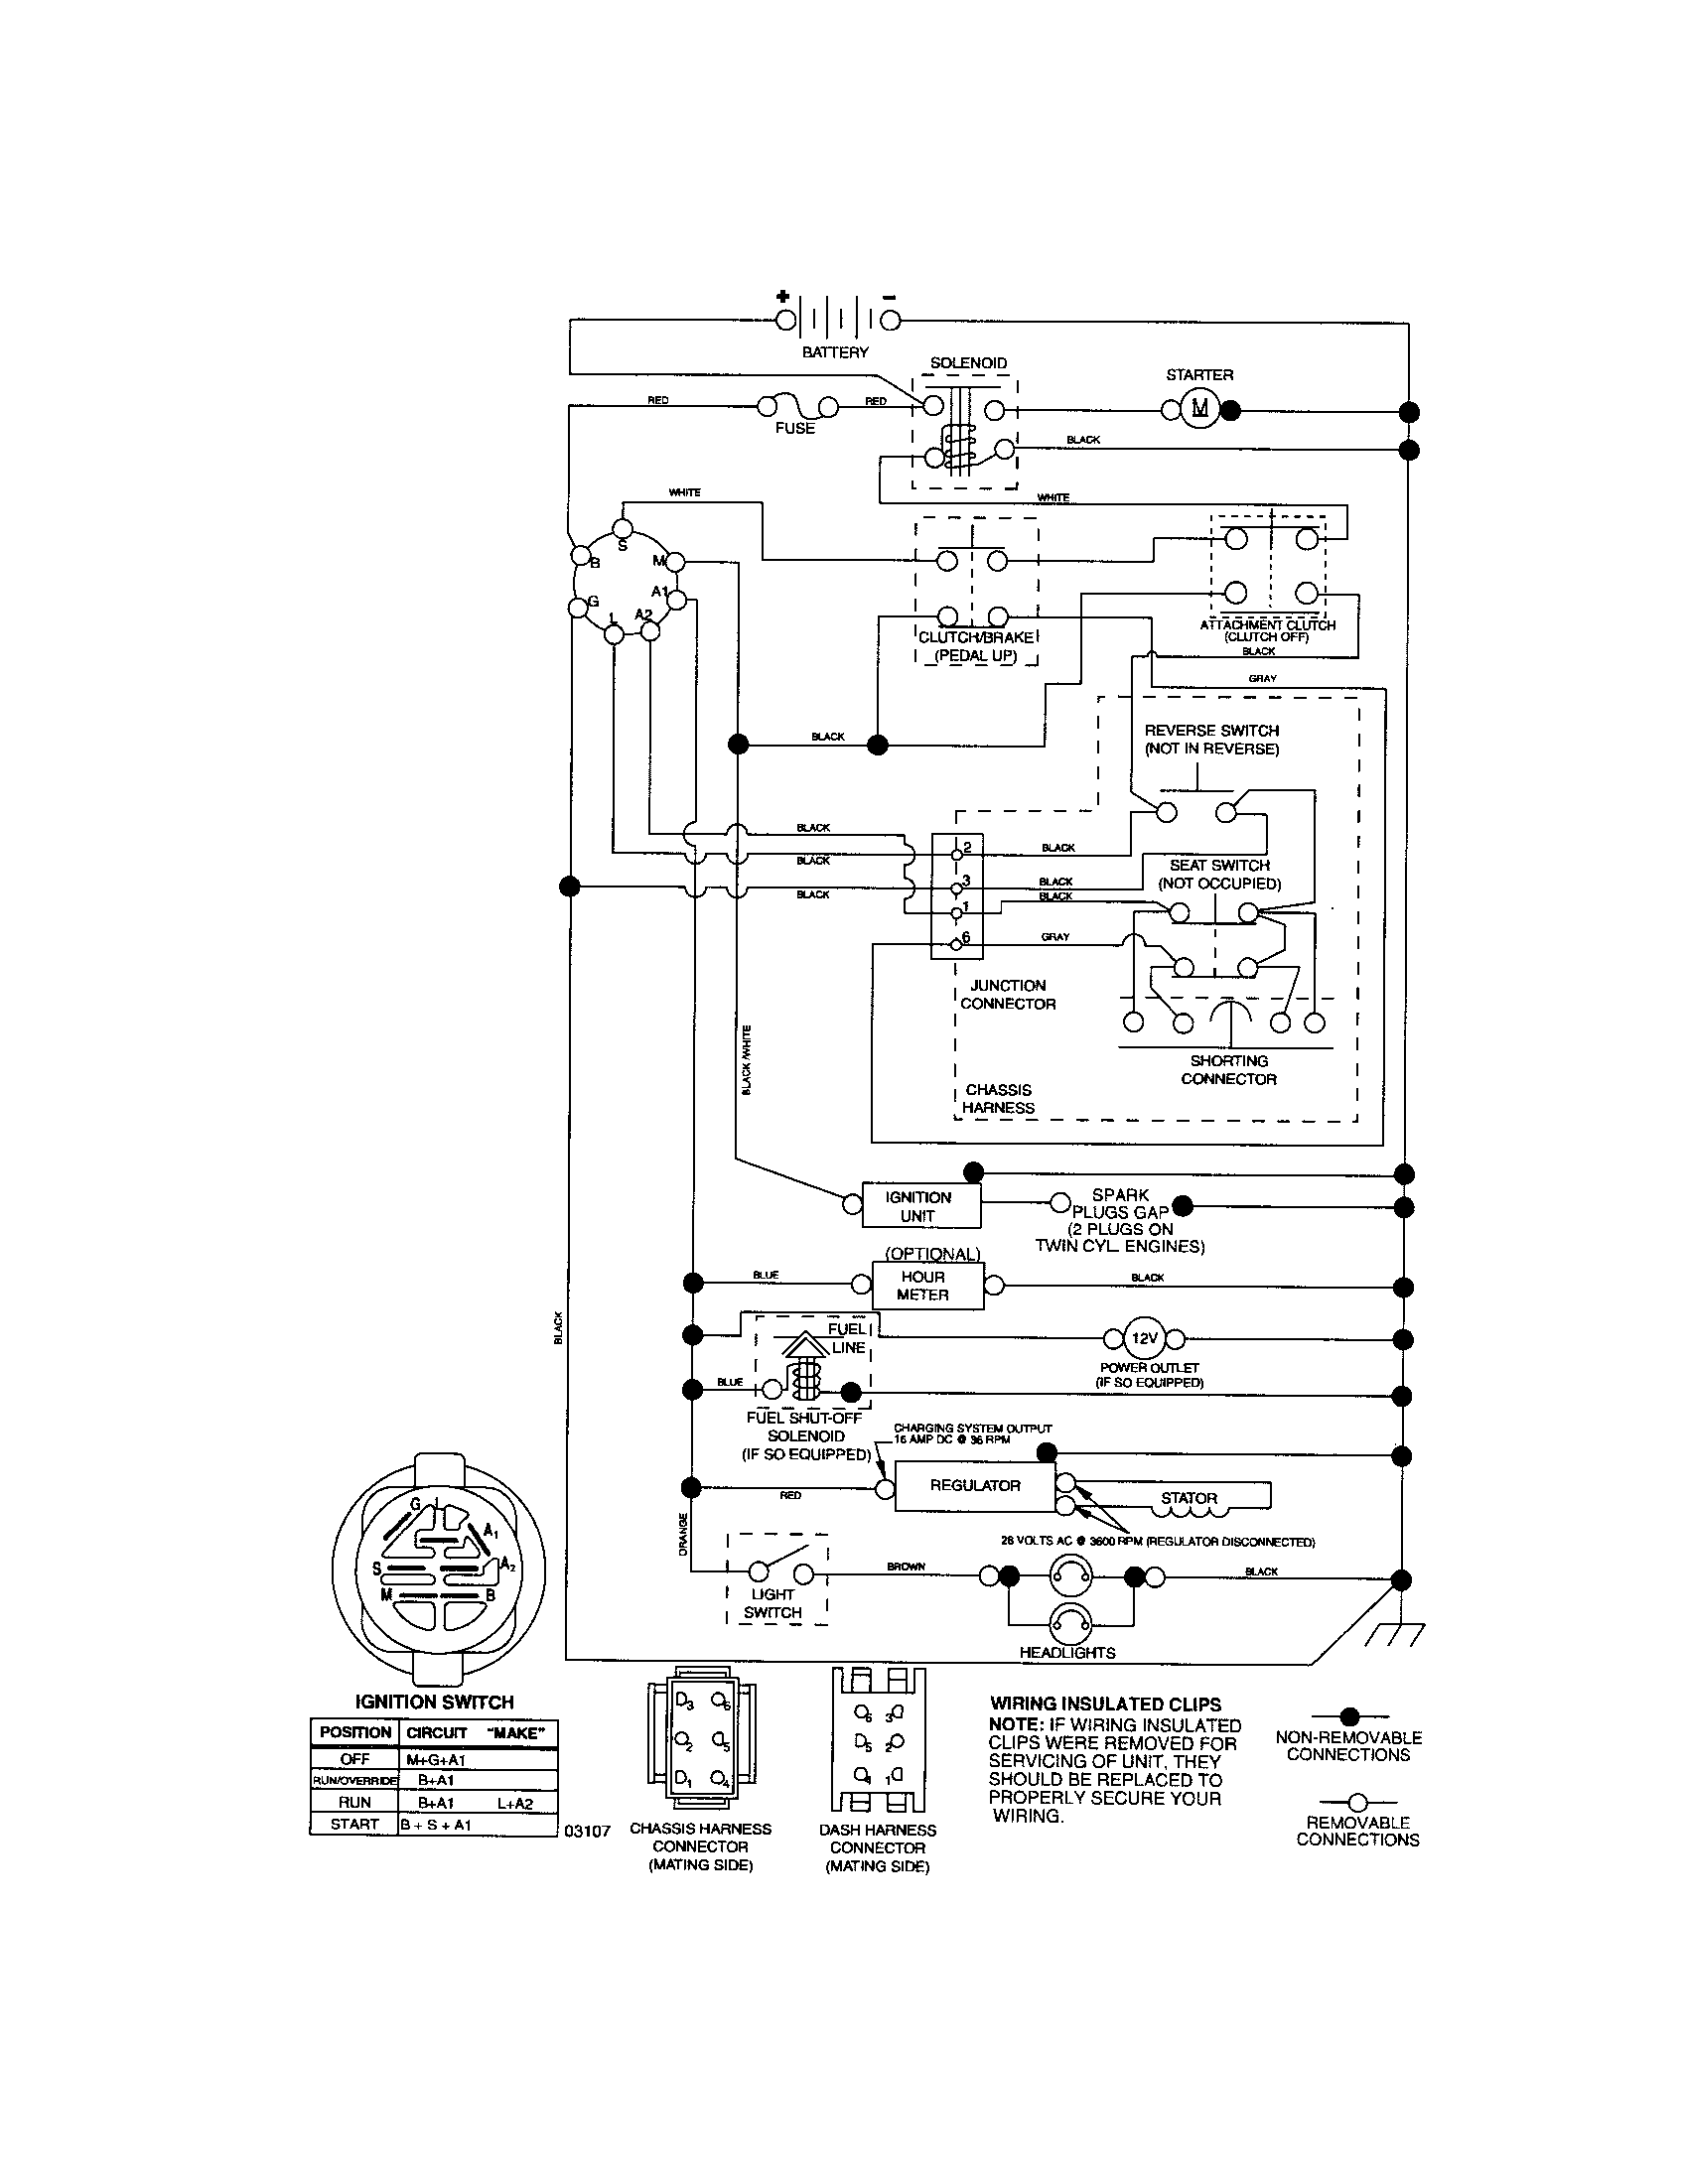 small resolution of craftsman riding mower electrical diagram wiring diagram craftsman kohler 17 hp wiring diagram free download